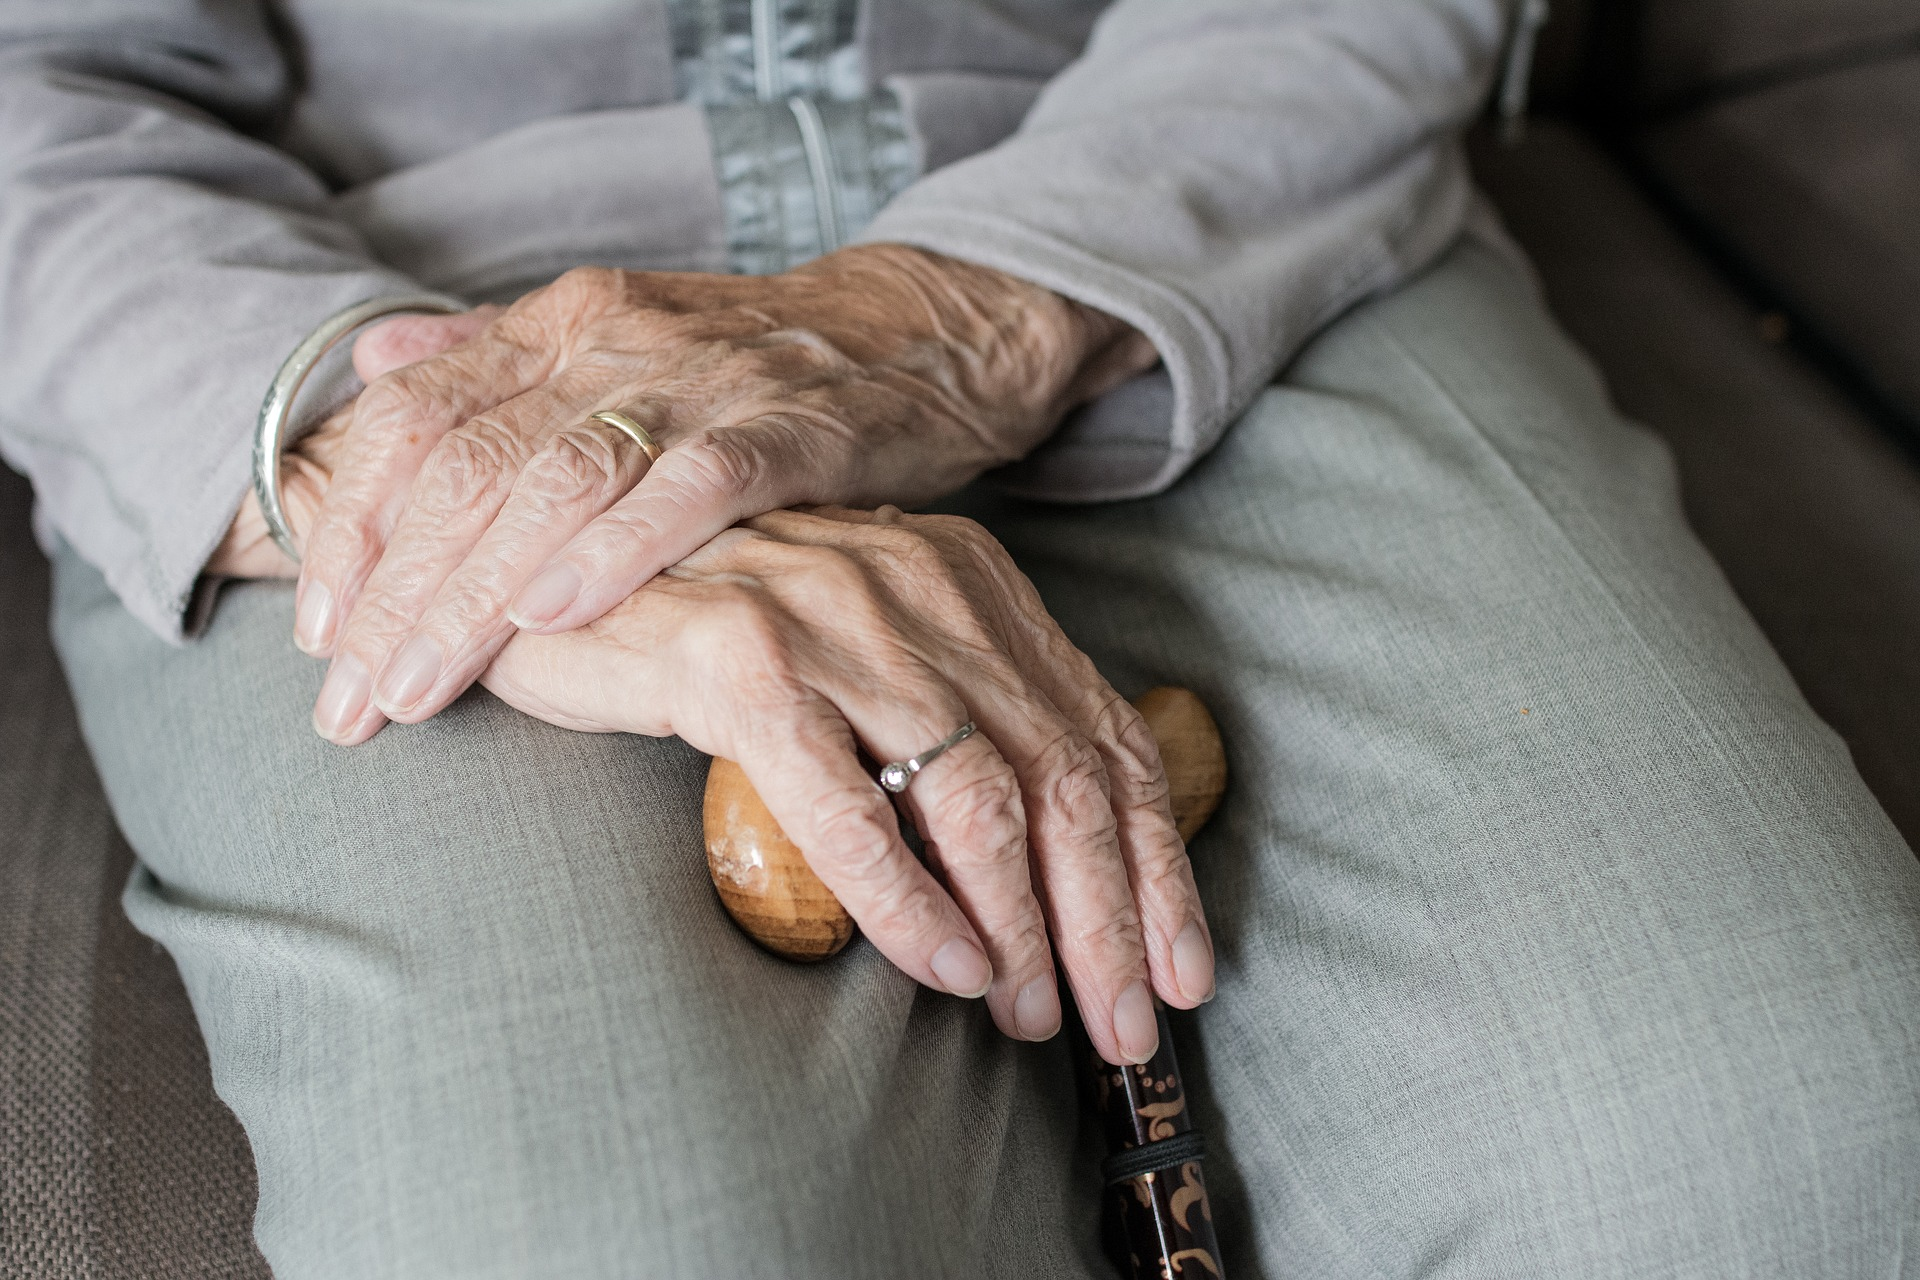 Hands of elderly woman holding cane Image by Sabine van Erp from Pixabay